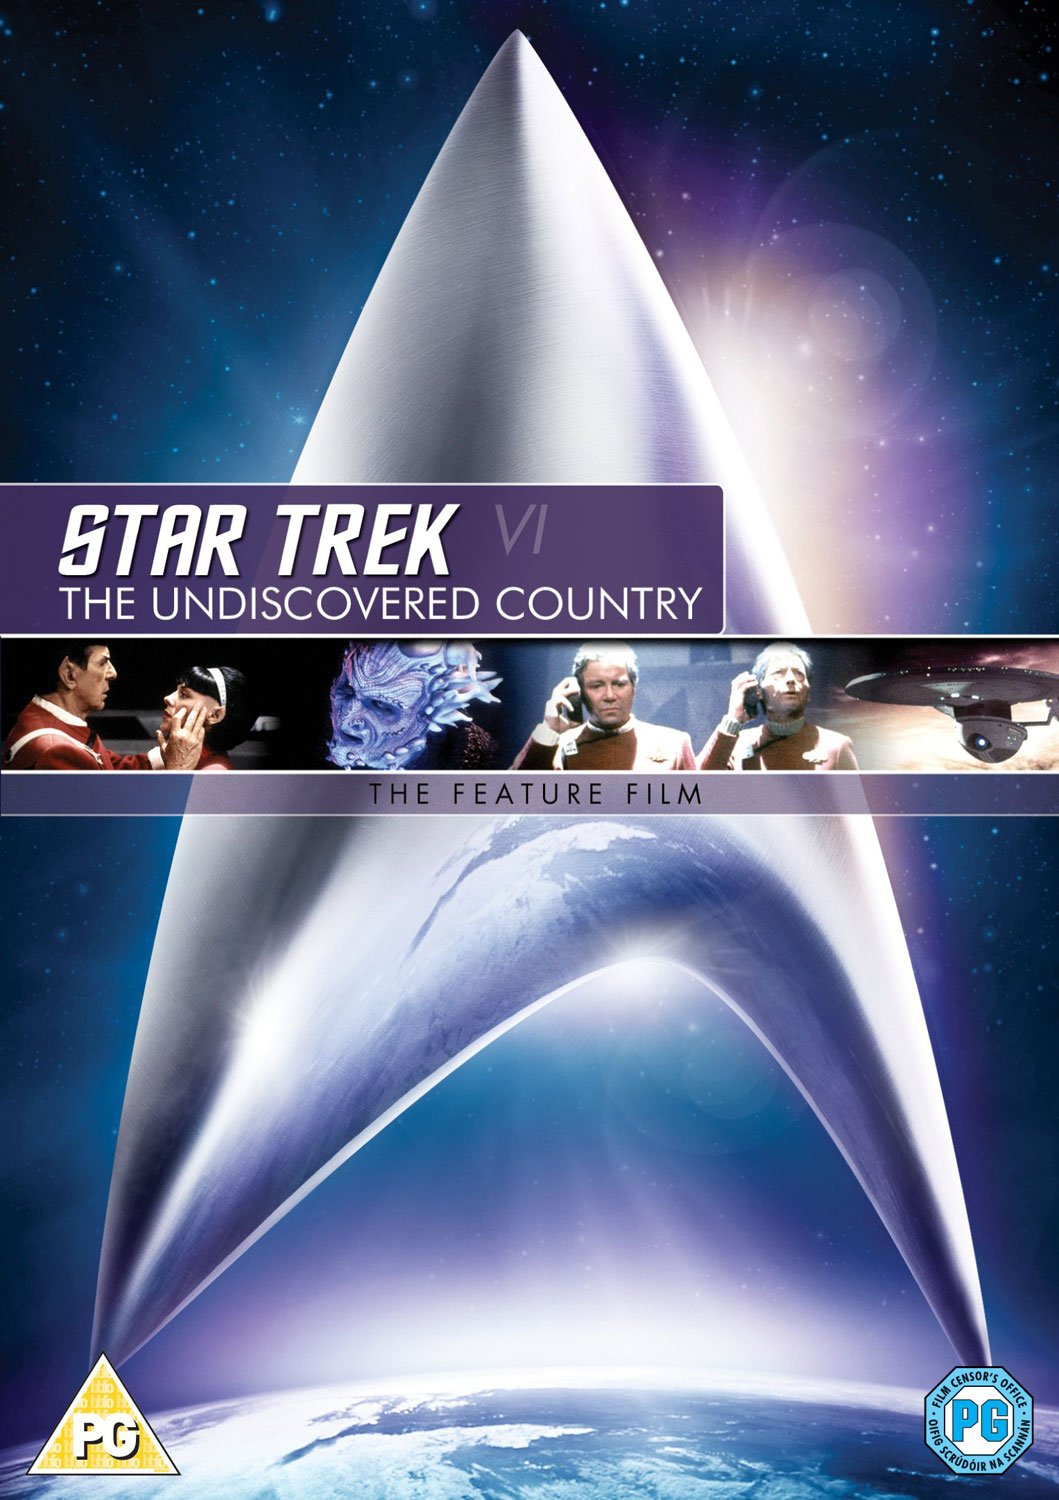 Star Trek Cheap mail order shopping Attention brand VI: The Country Undiscovered DVD